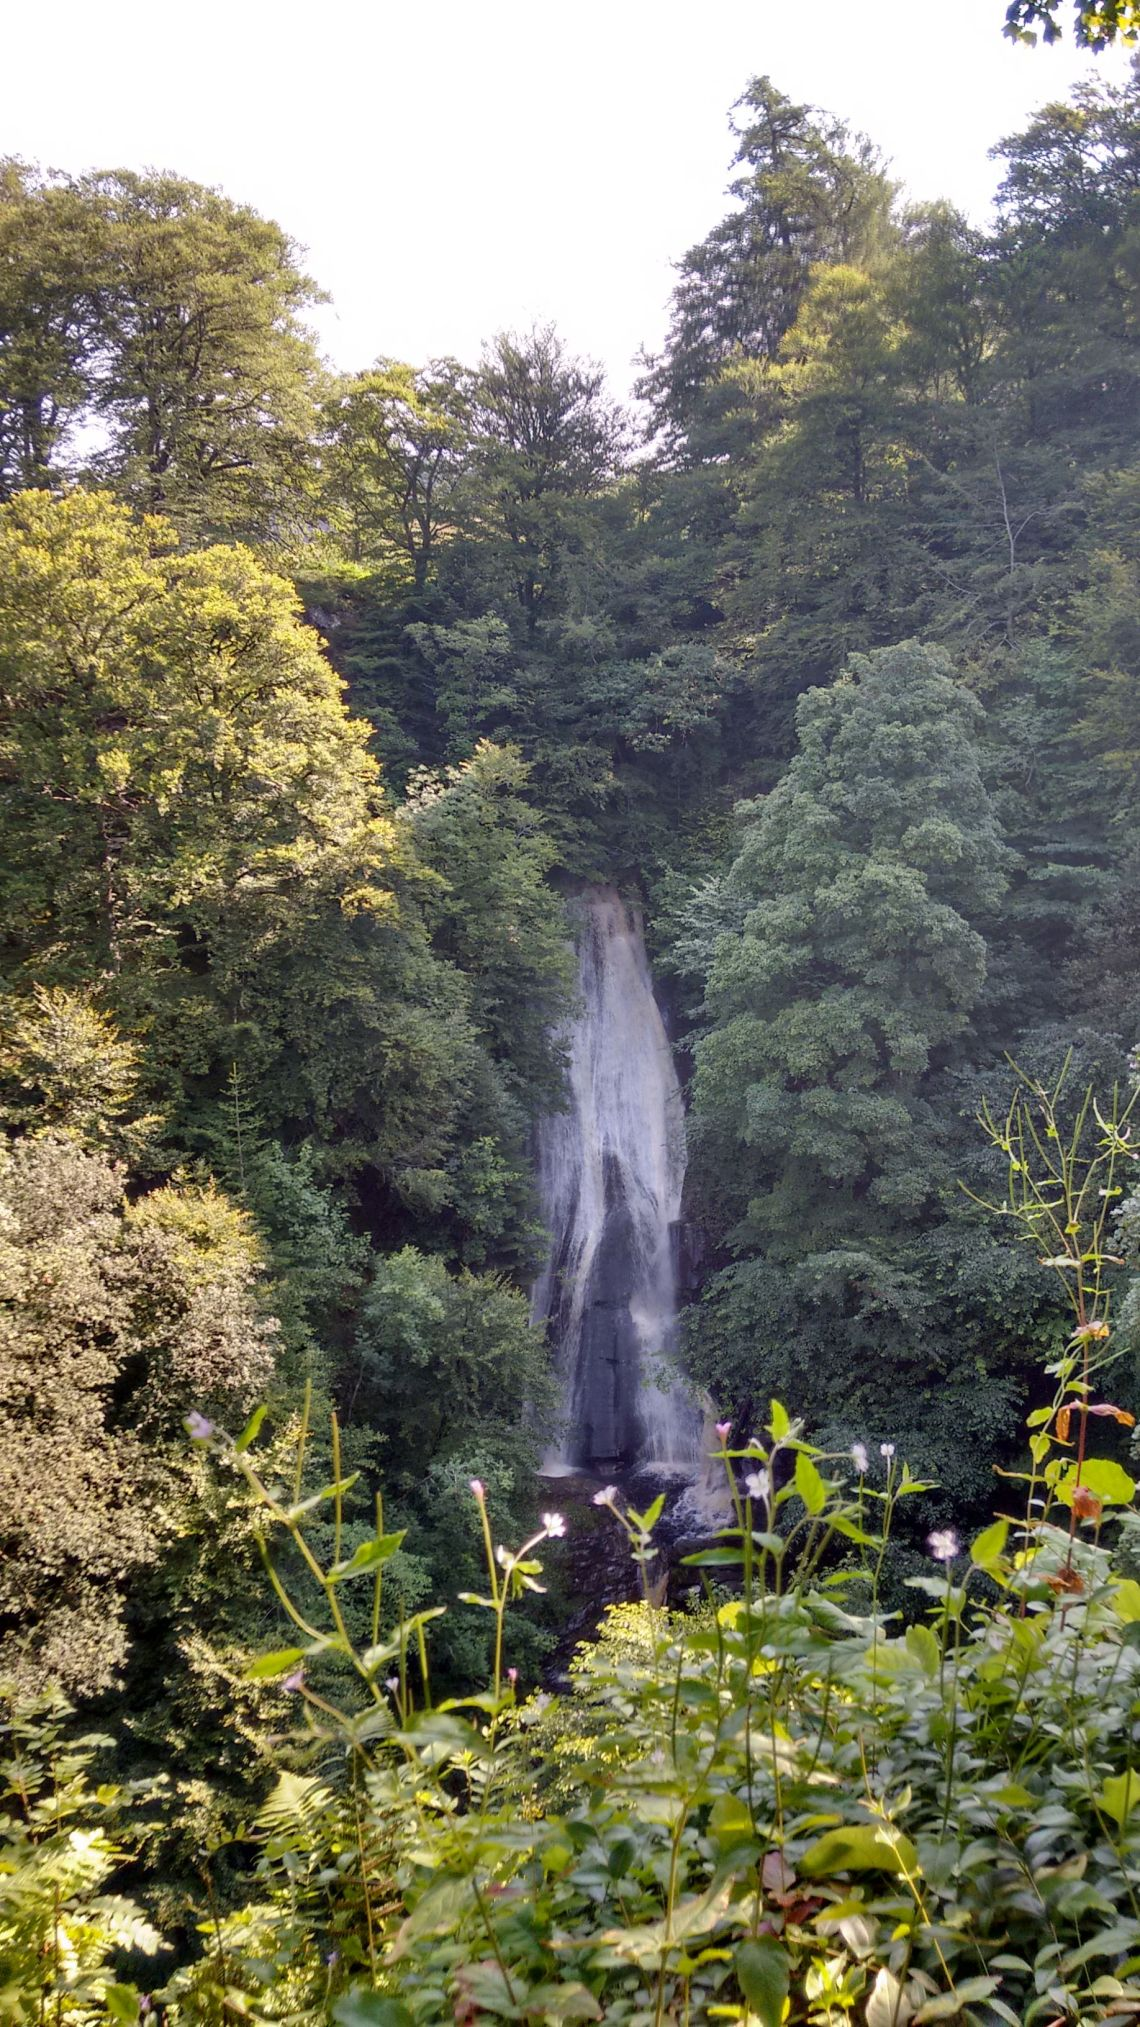 The Falls of Acharn